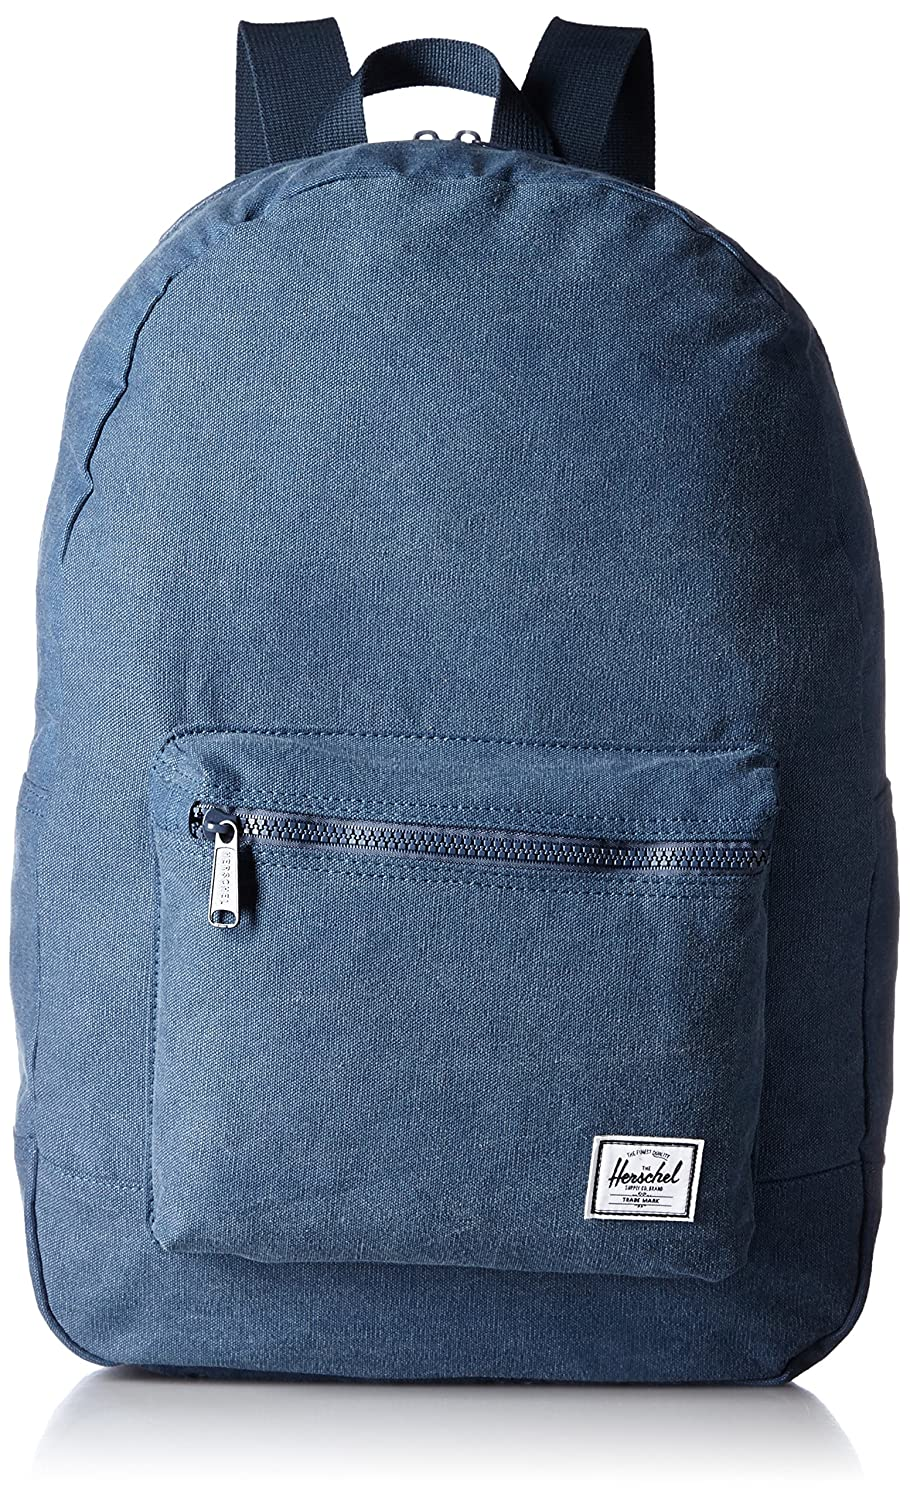 fad1038dcdc Herschel Supply Co. Packable Canvas Daypack Backpack